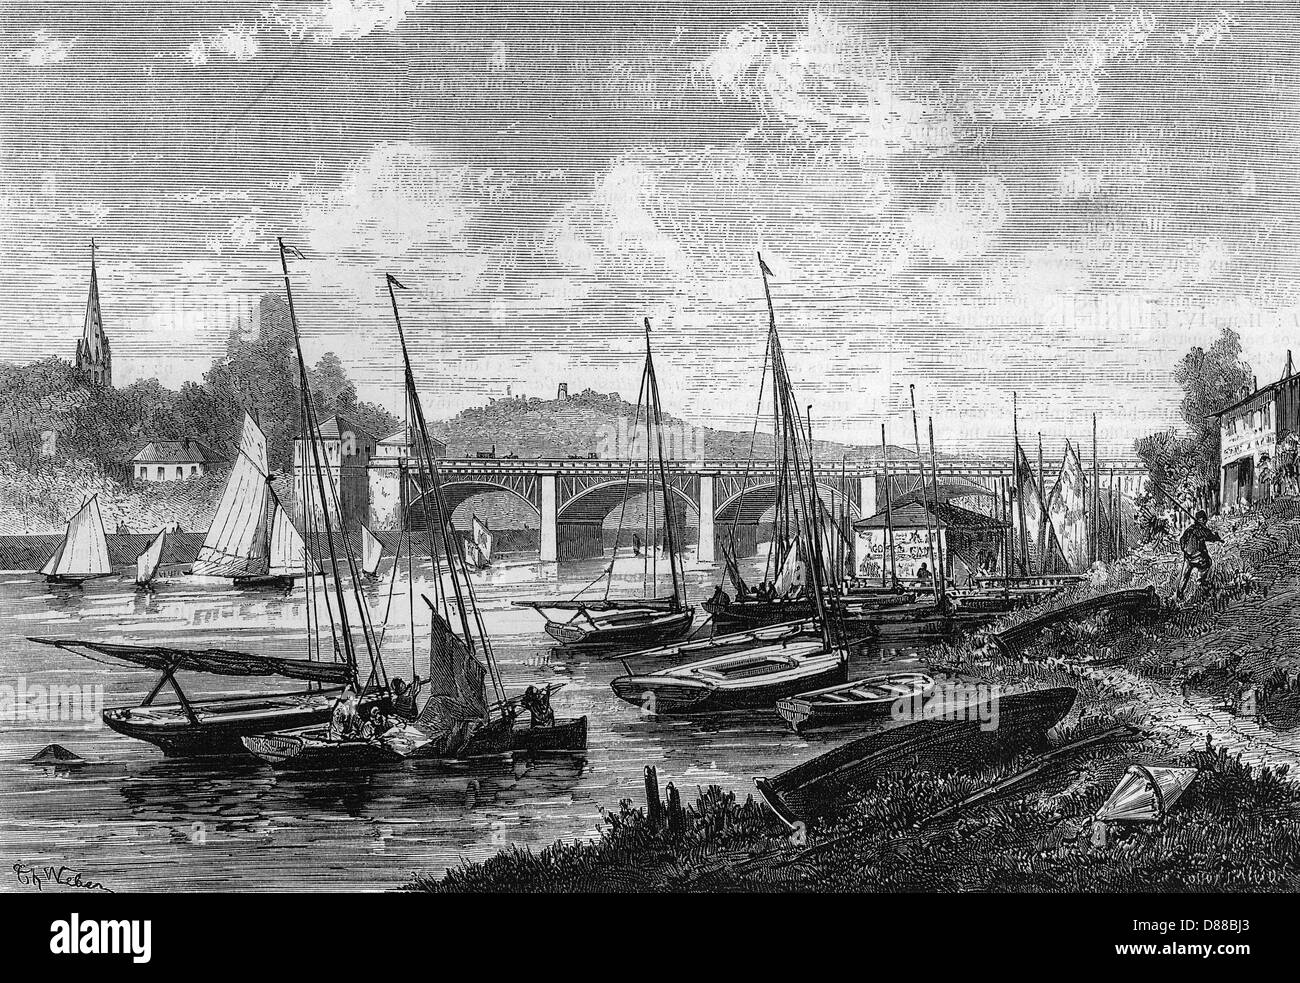 France Argenteuil 1869 - Stock Image